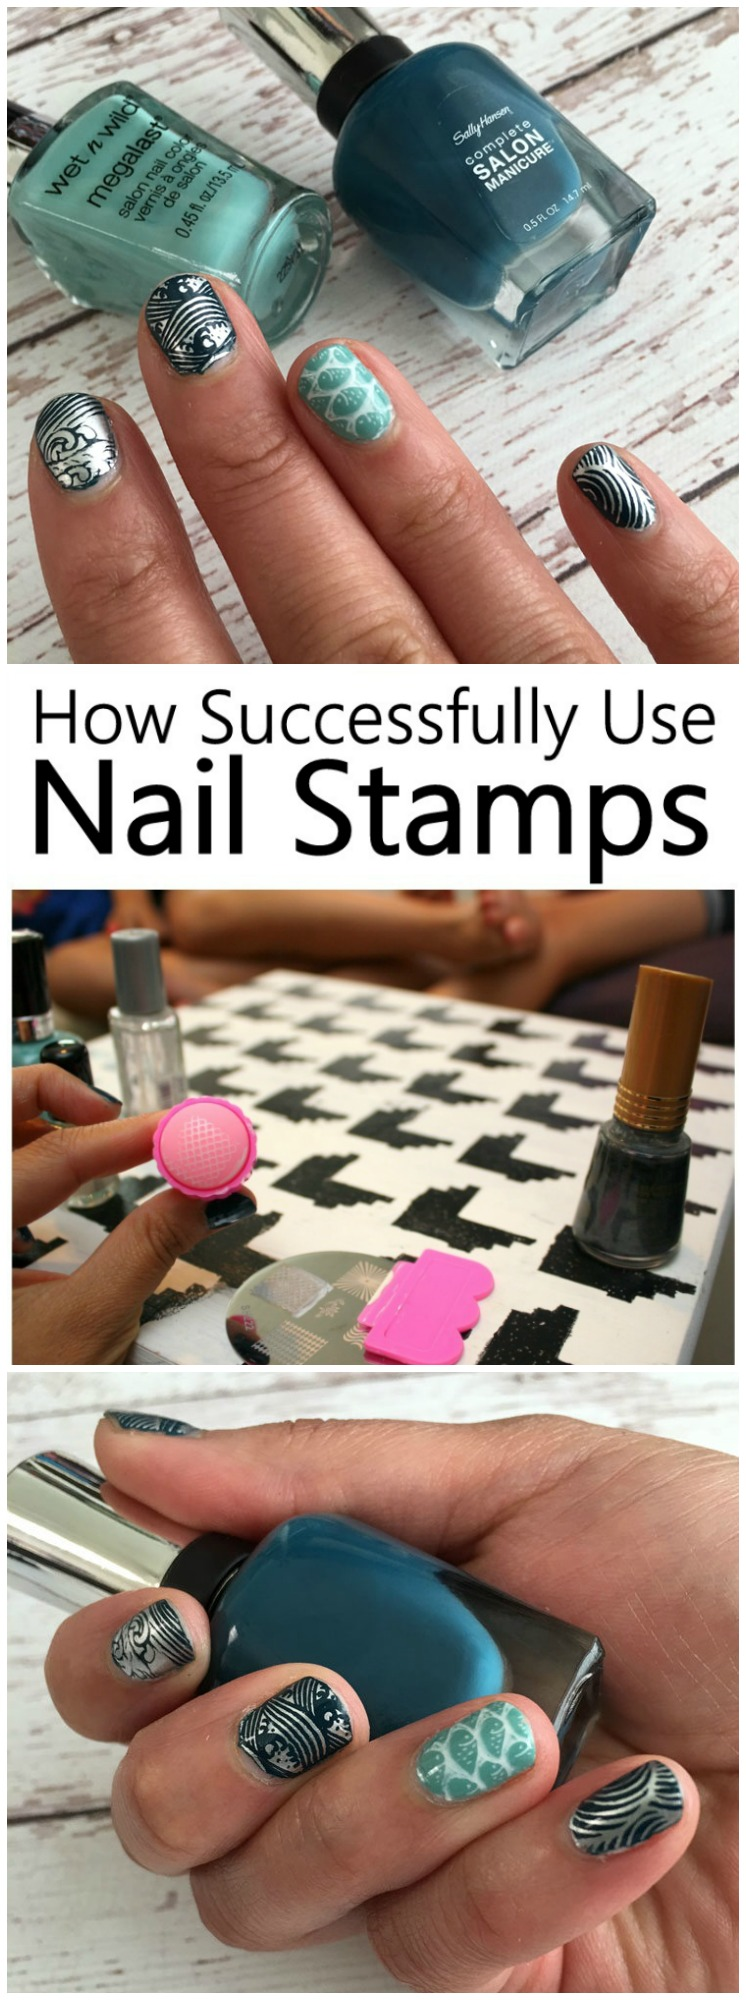 How To Stamp Nails Tips And Tricks For Success Rae Gun Ramblings